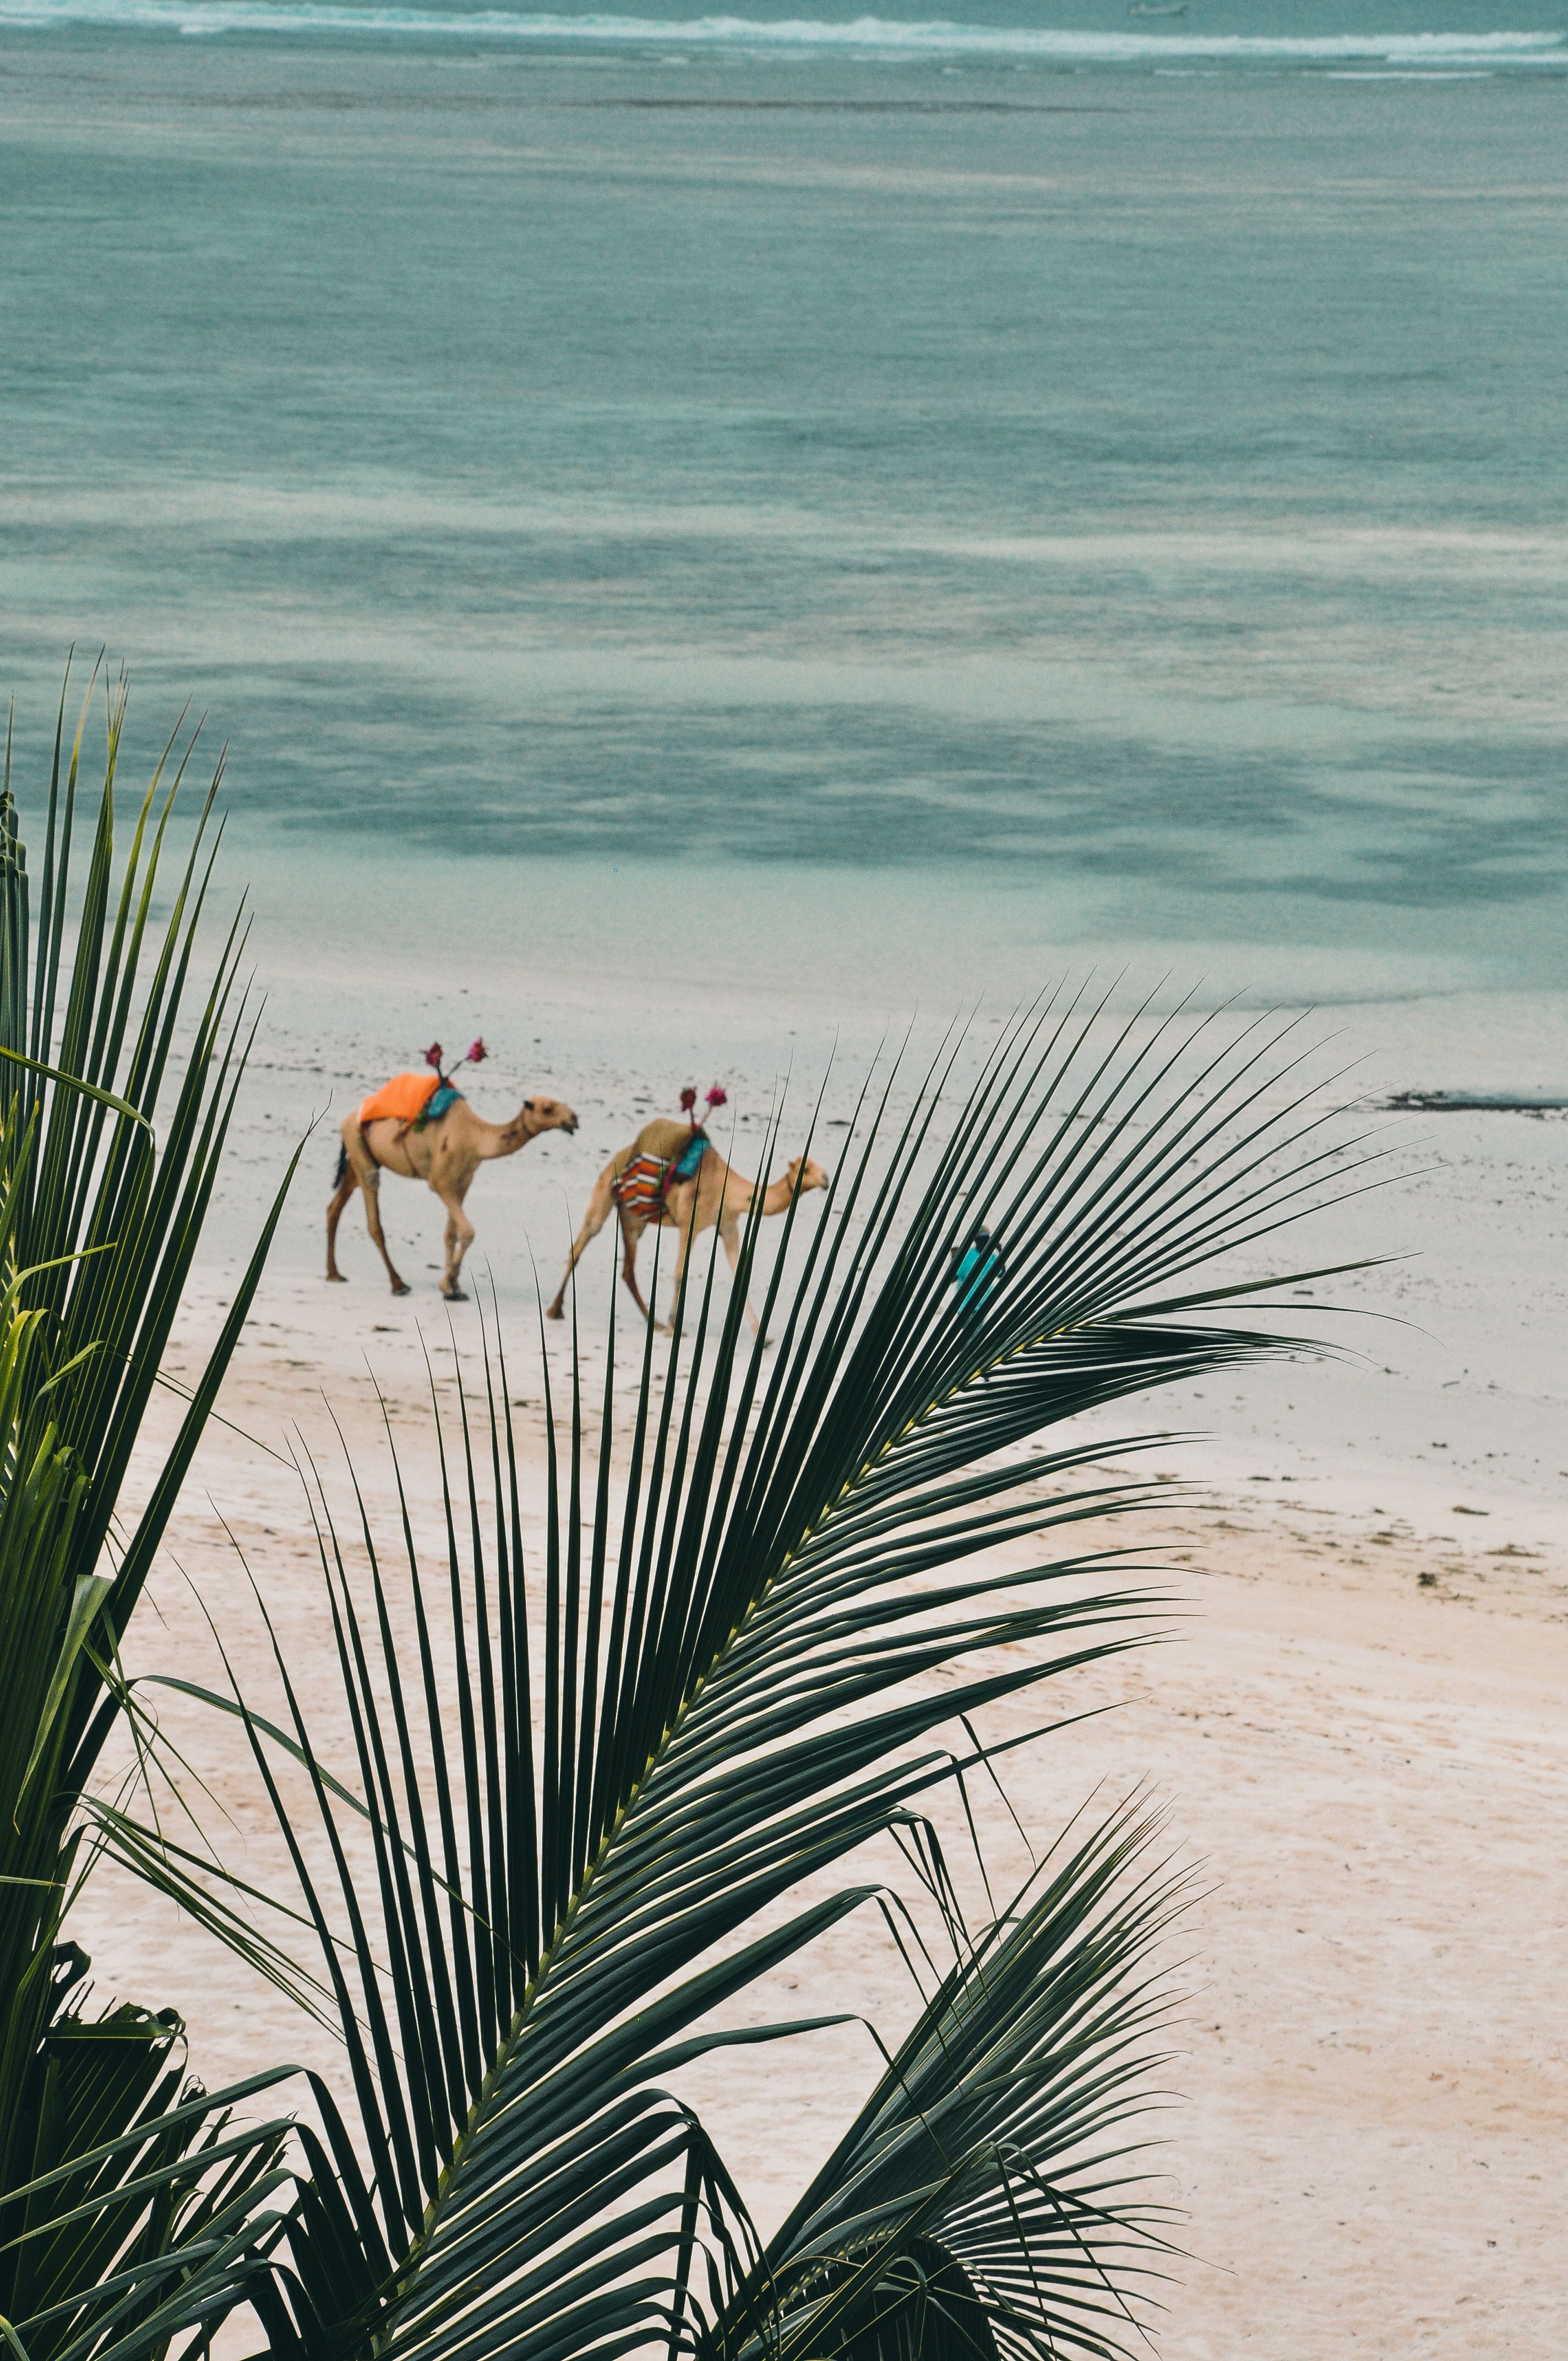 camels walking on beach - Mombassa